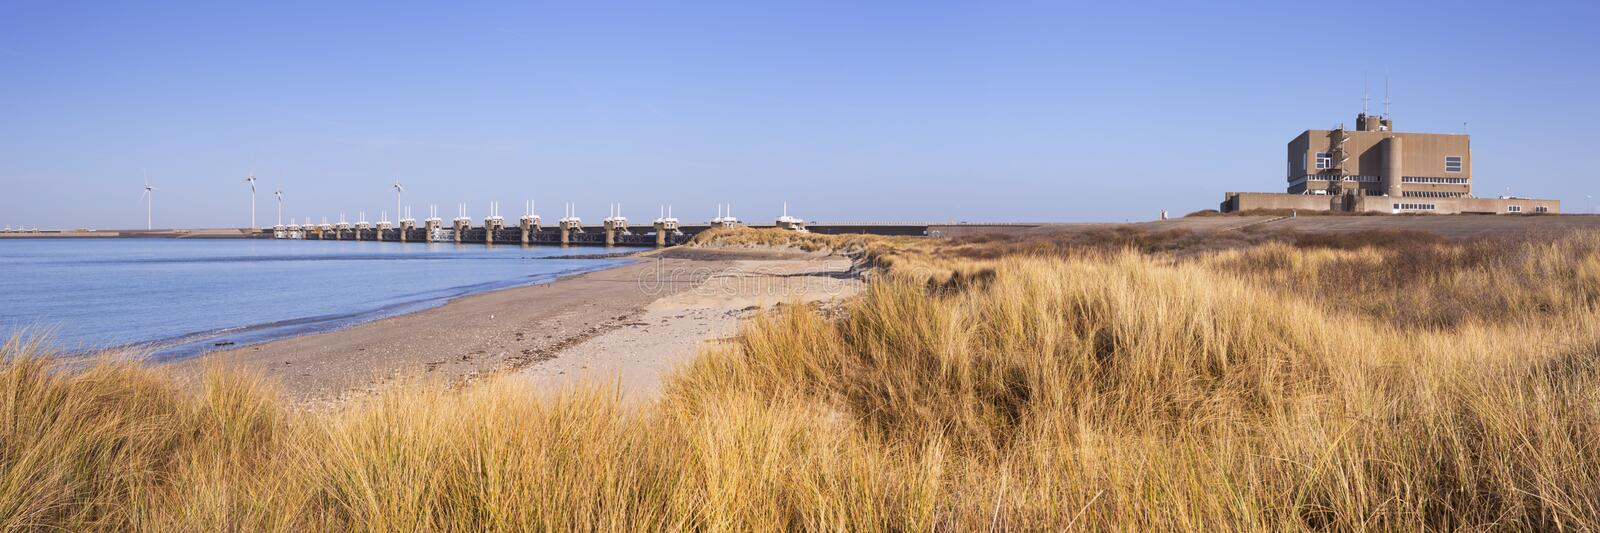 Eastern Scheldt Barrier at Neeltje Jans in The Netherlands royalty free stock photography